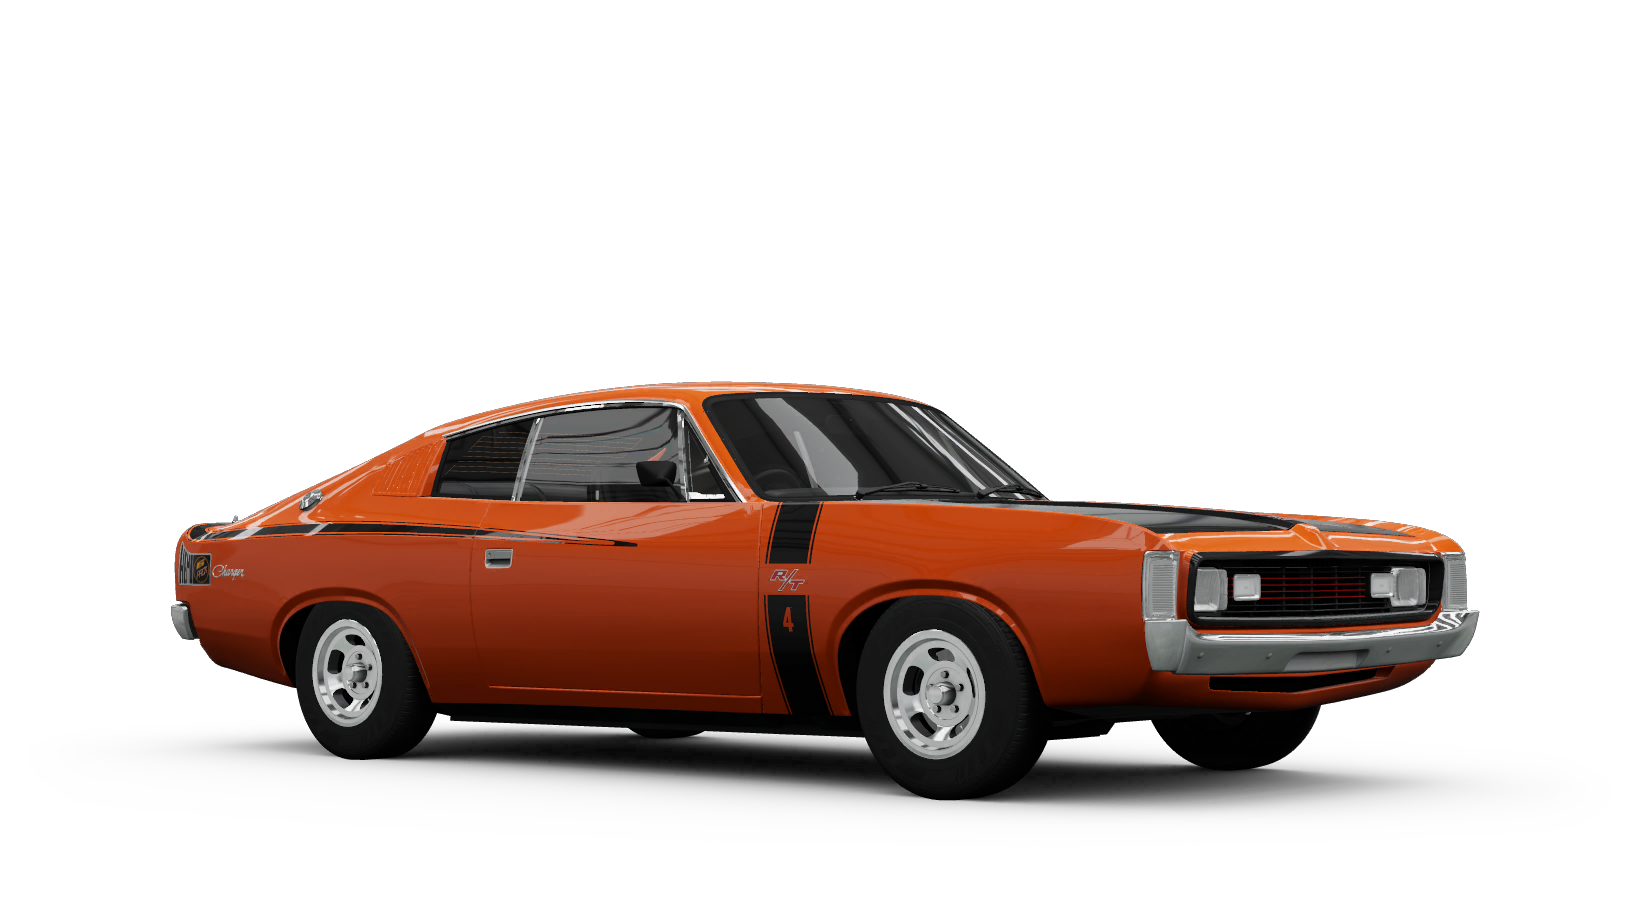 Chrysler VH Valiant Charger R/T E49